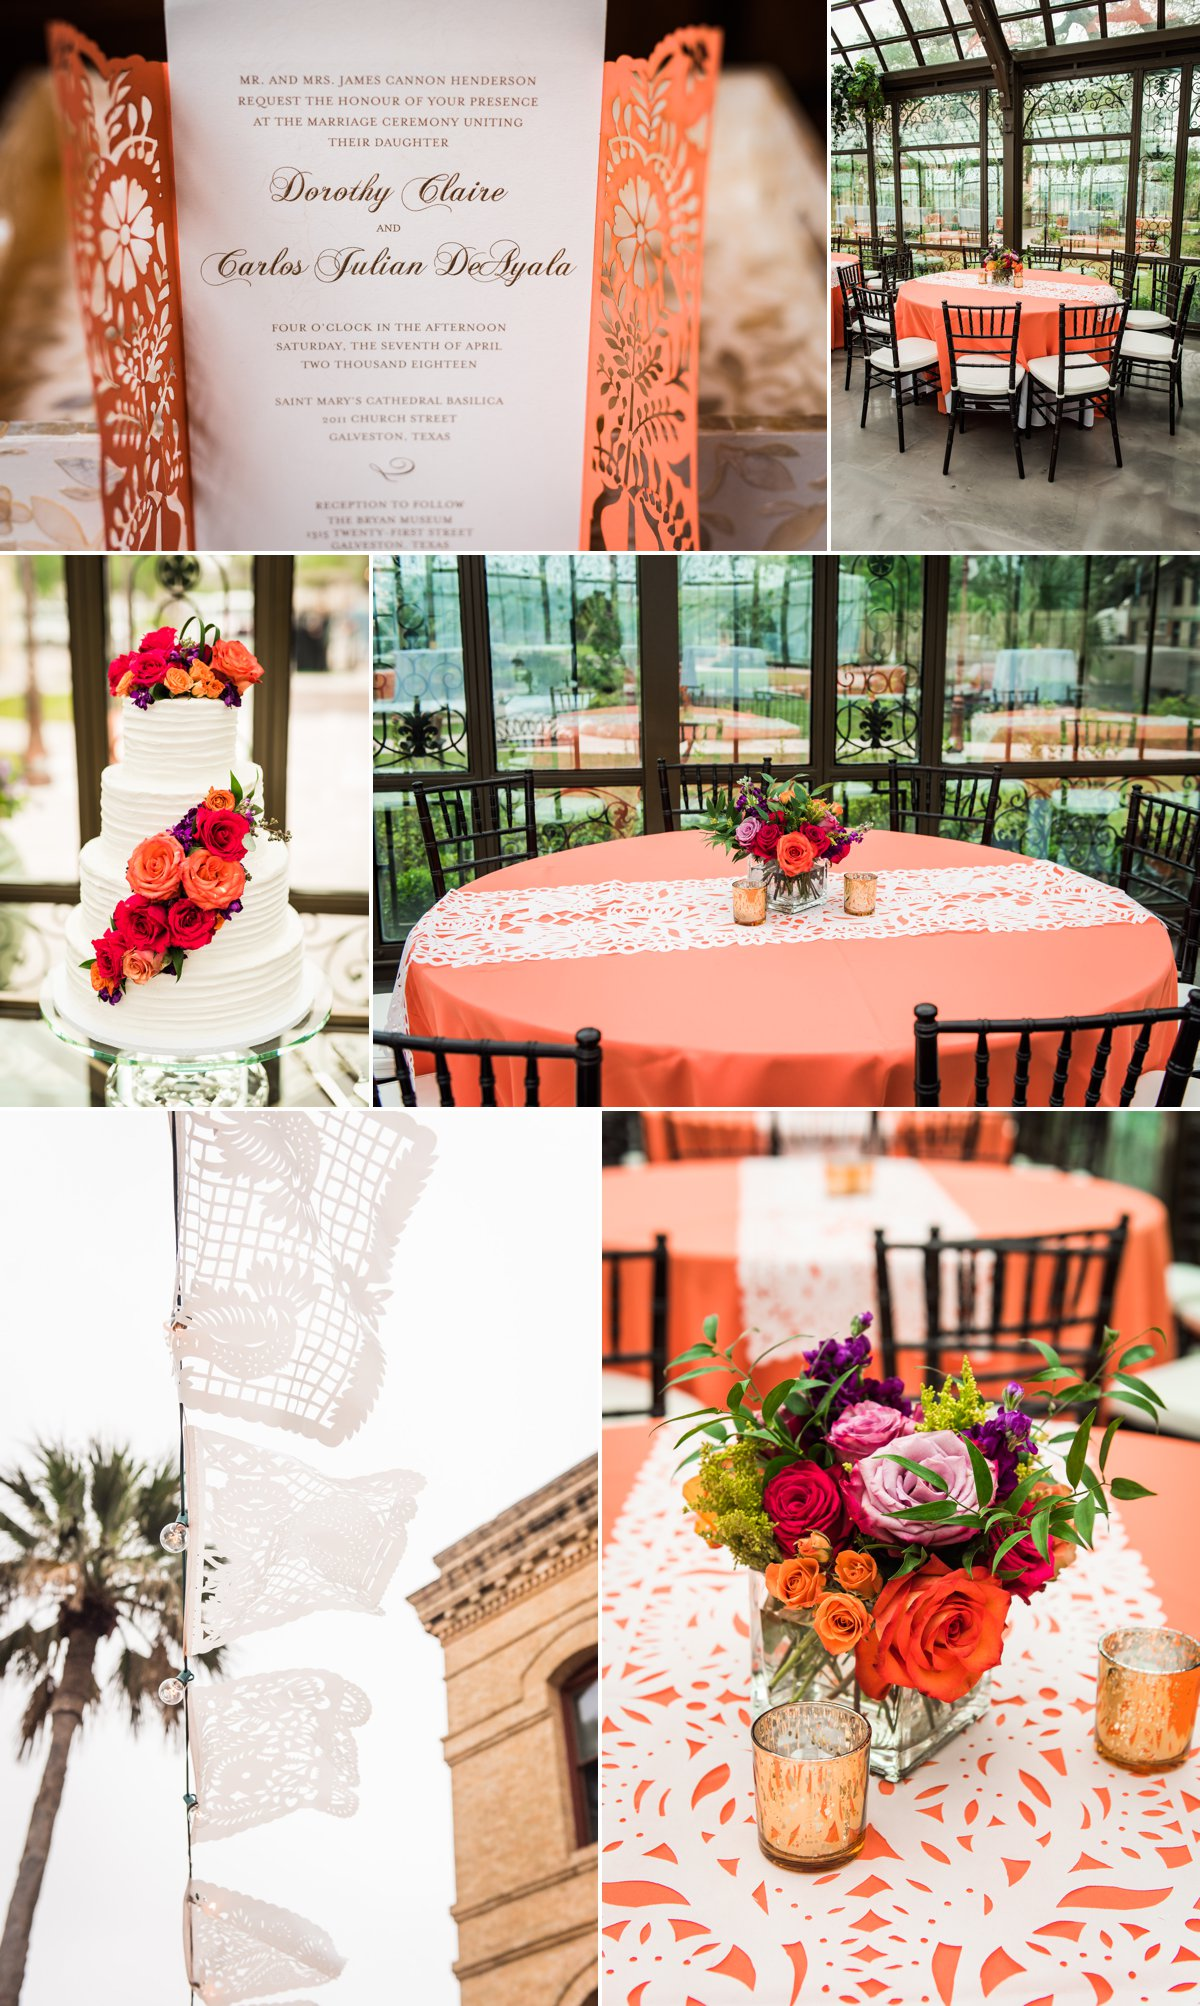 The Bryan Museum Wedding Venue in Galveston